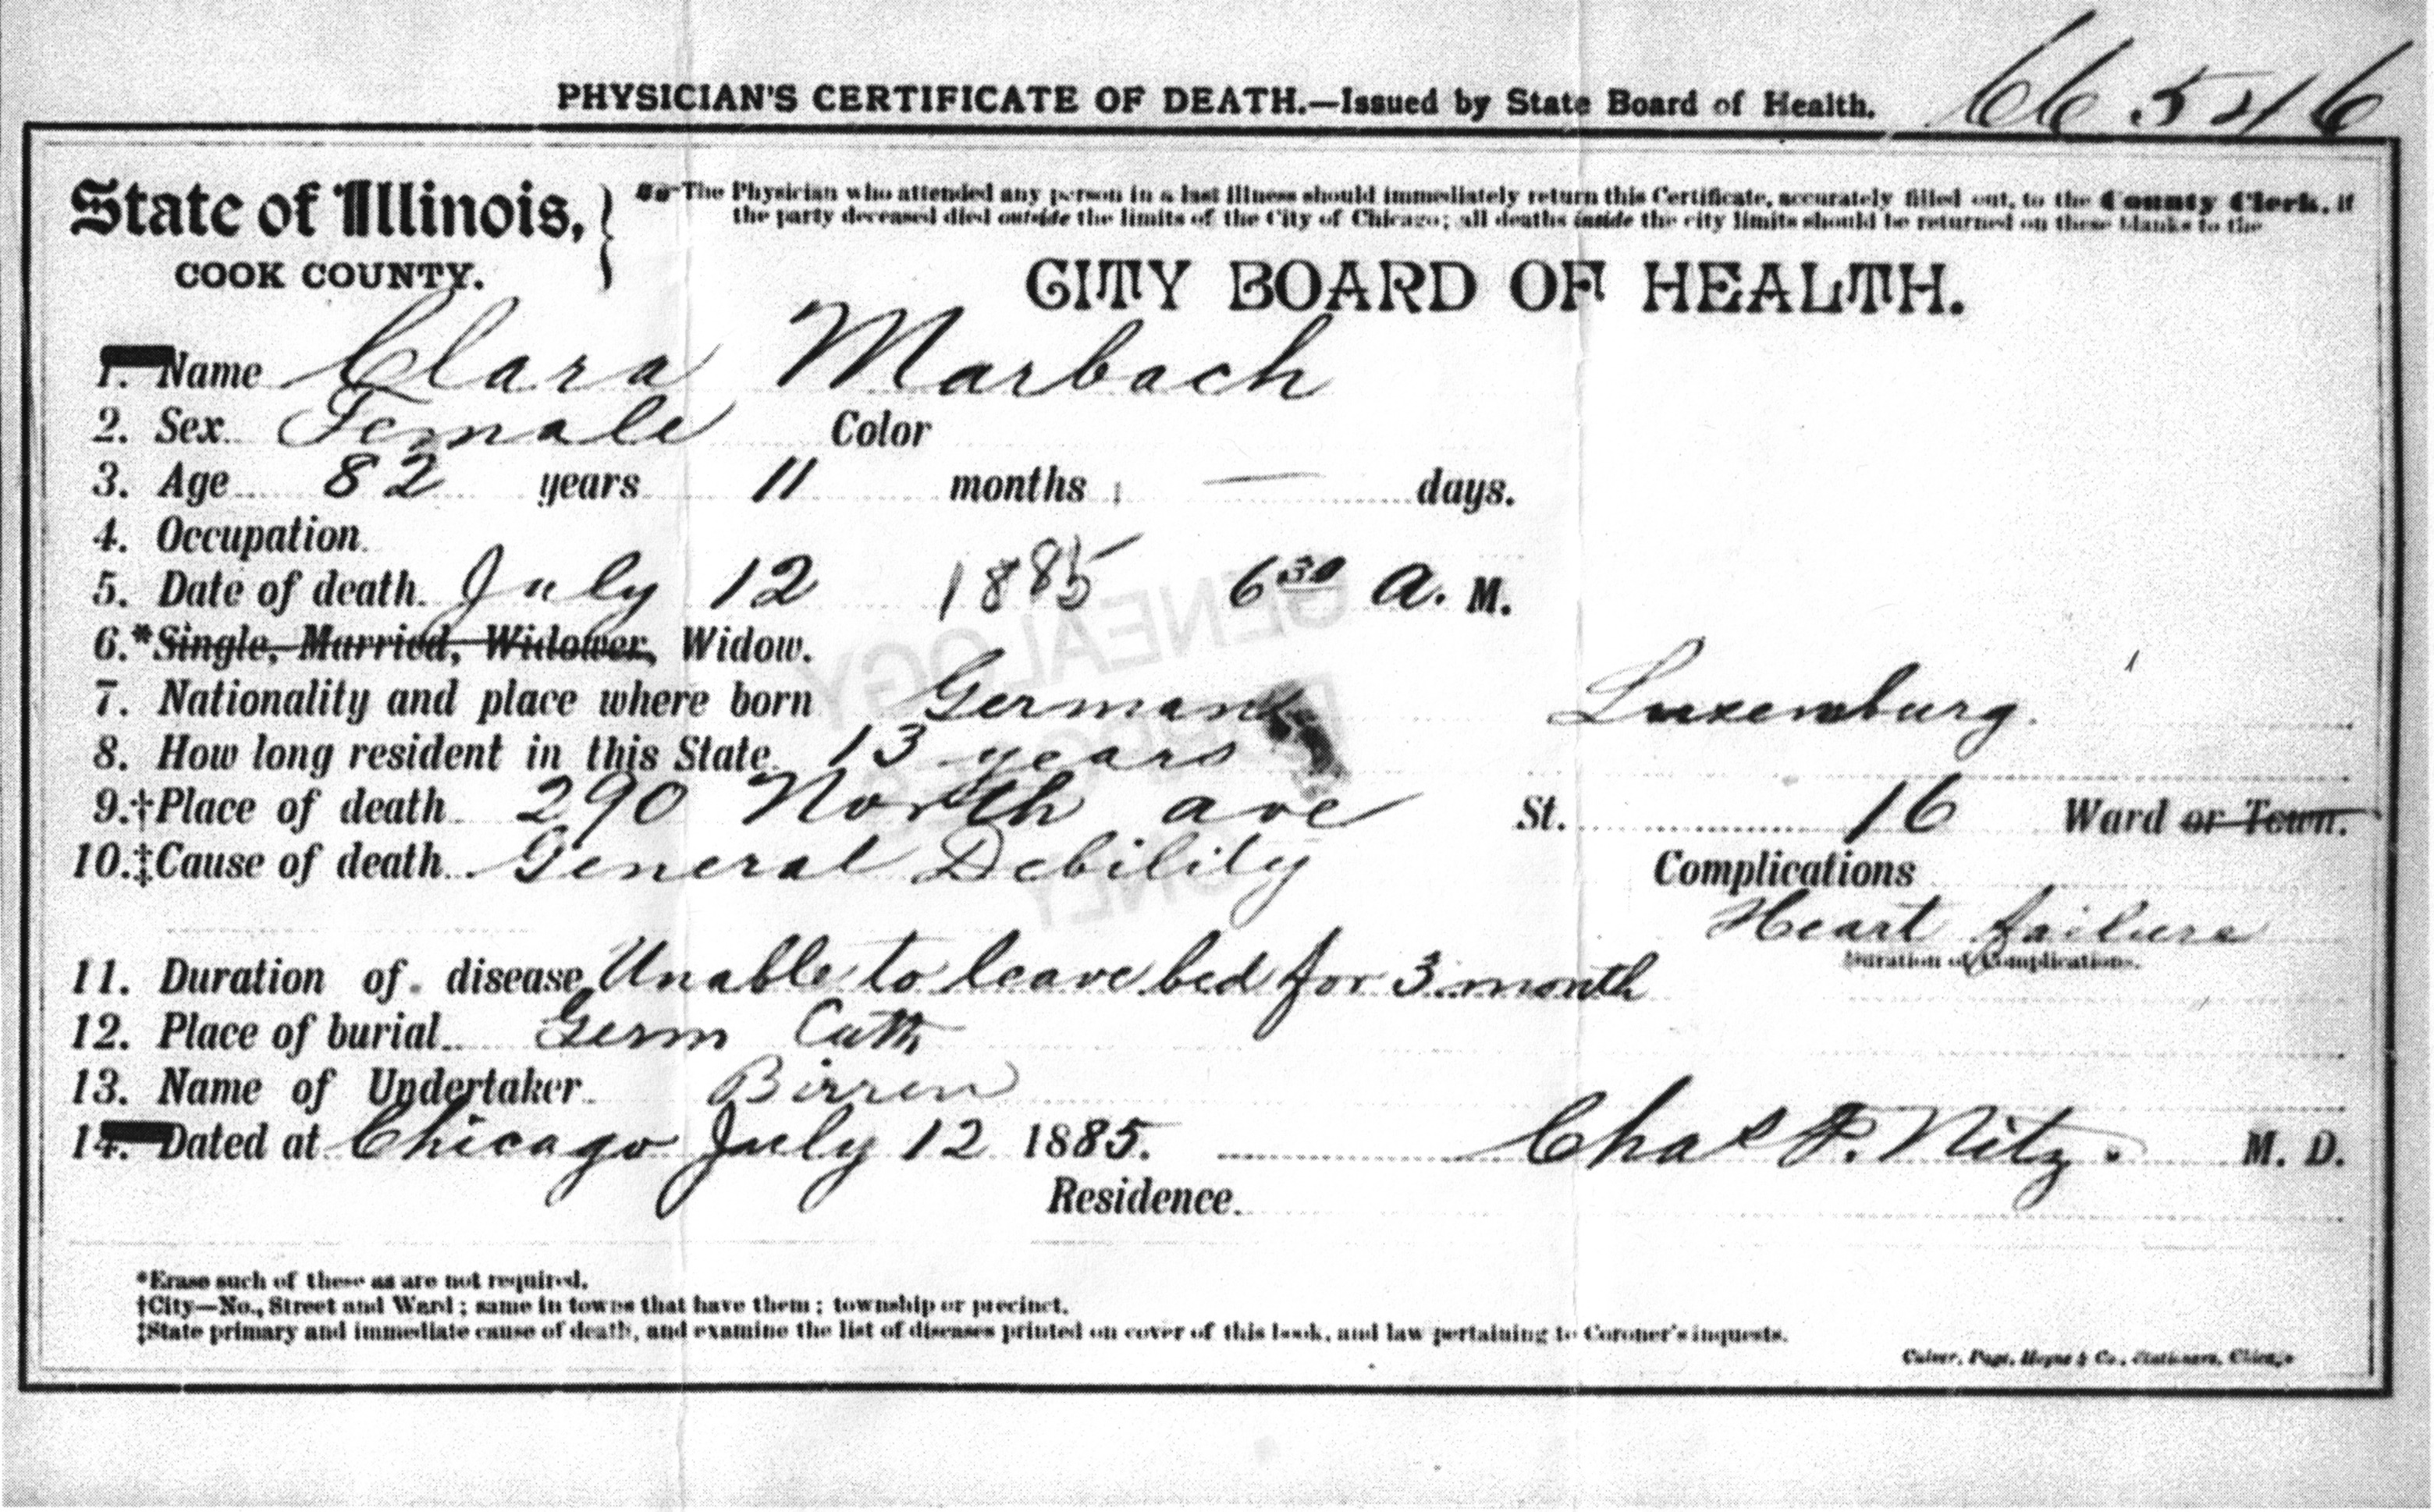 Chicago homestead genealogical research cook county illinois death certificate no 66546 clara marbach cook county clerk chicago 1betcityfo Image collections